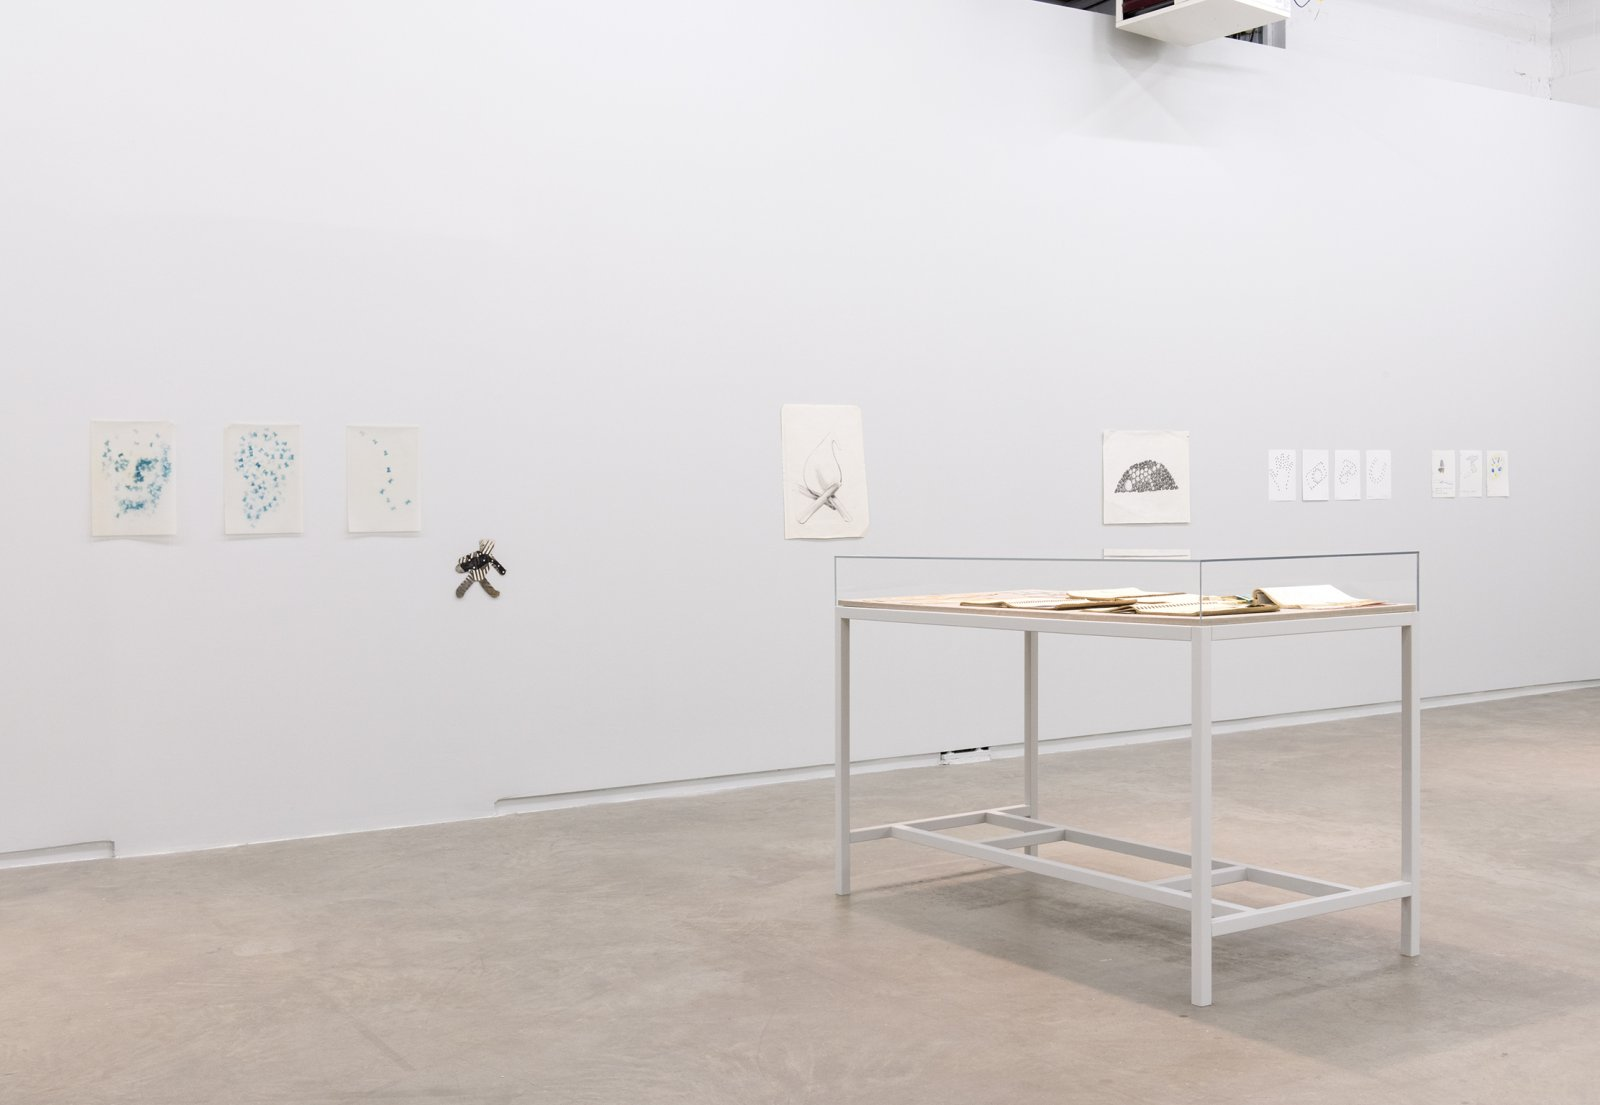 Jerry Pethick, installation view, Where Sidewalks Leap On The Table, Catriona Jeffries, 2014 ​​ by Jerry Pethick